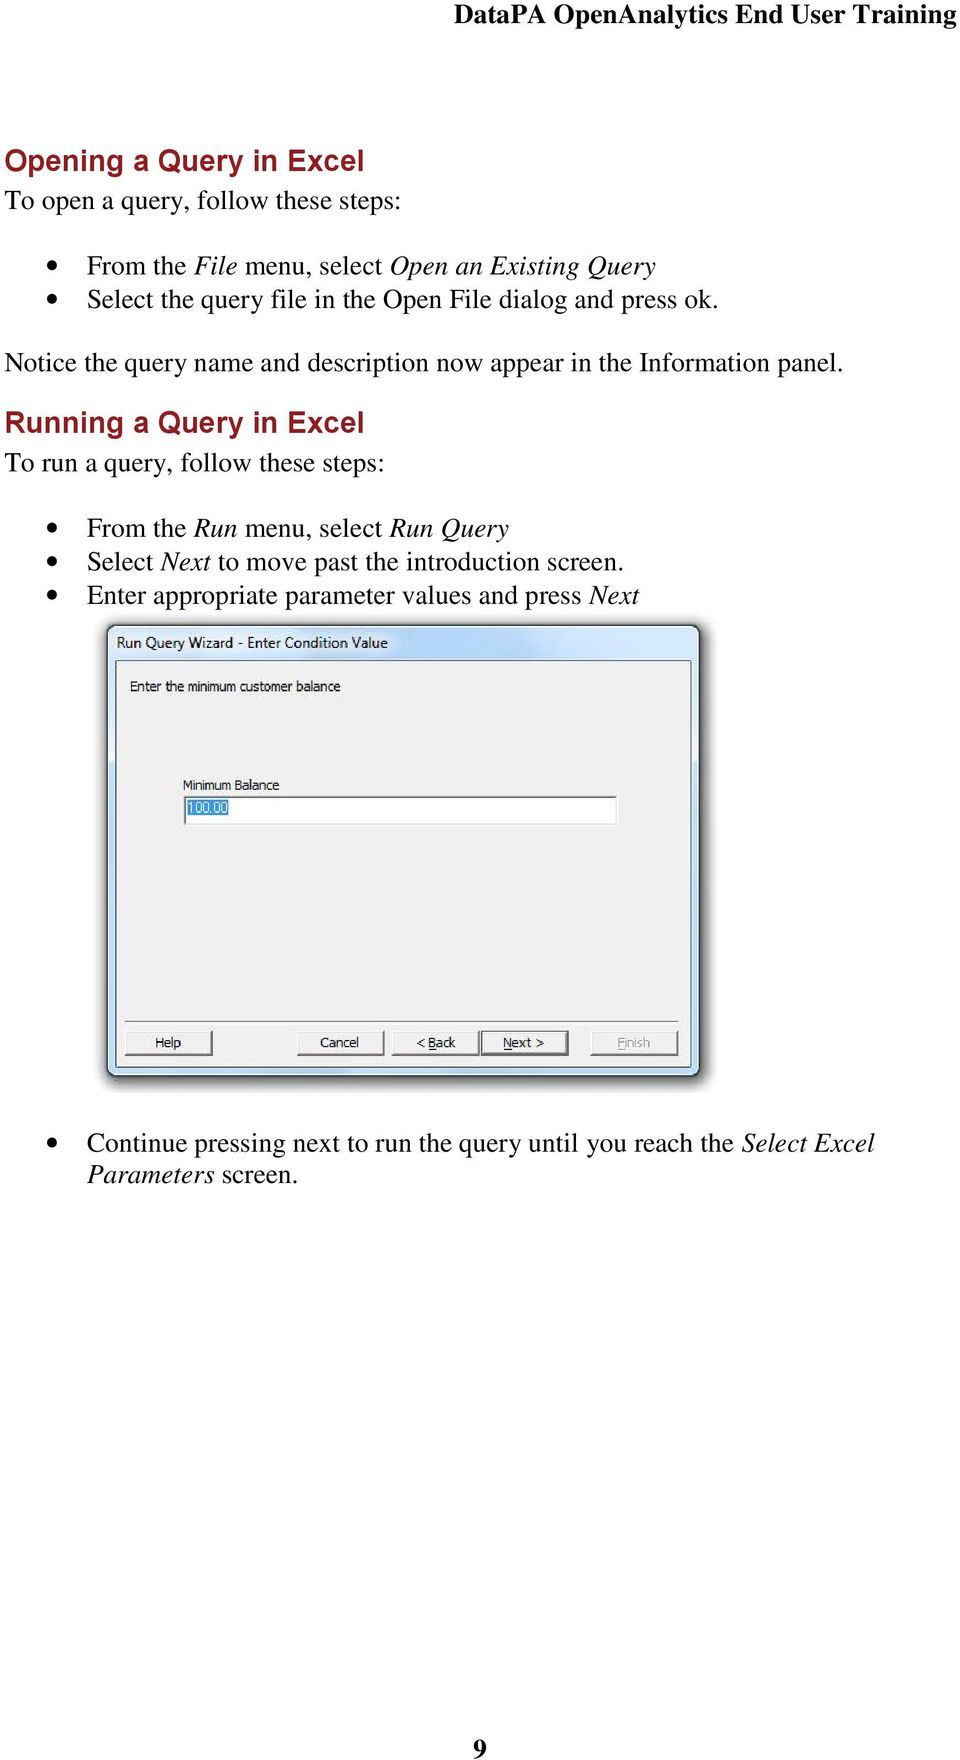 Running a Query in Excel To run a query, follow these steps: From the Run menu, select Run Query Select Next to move past the